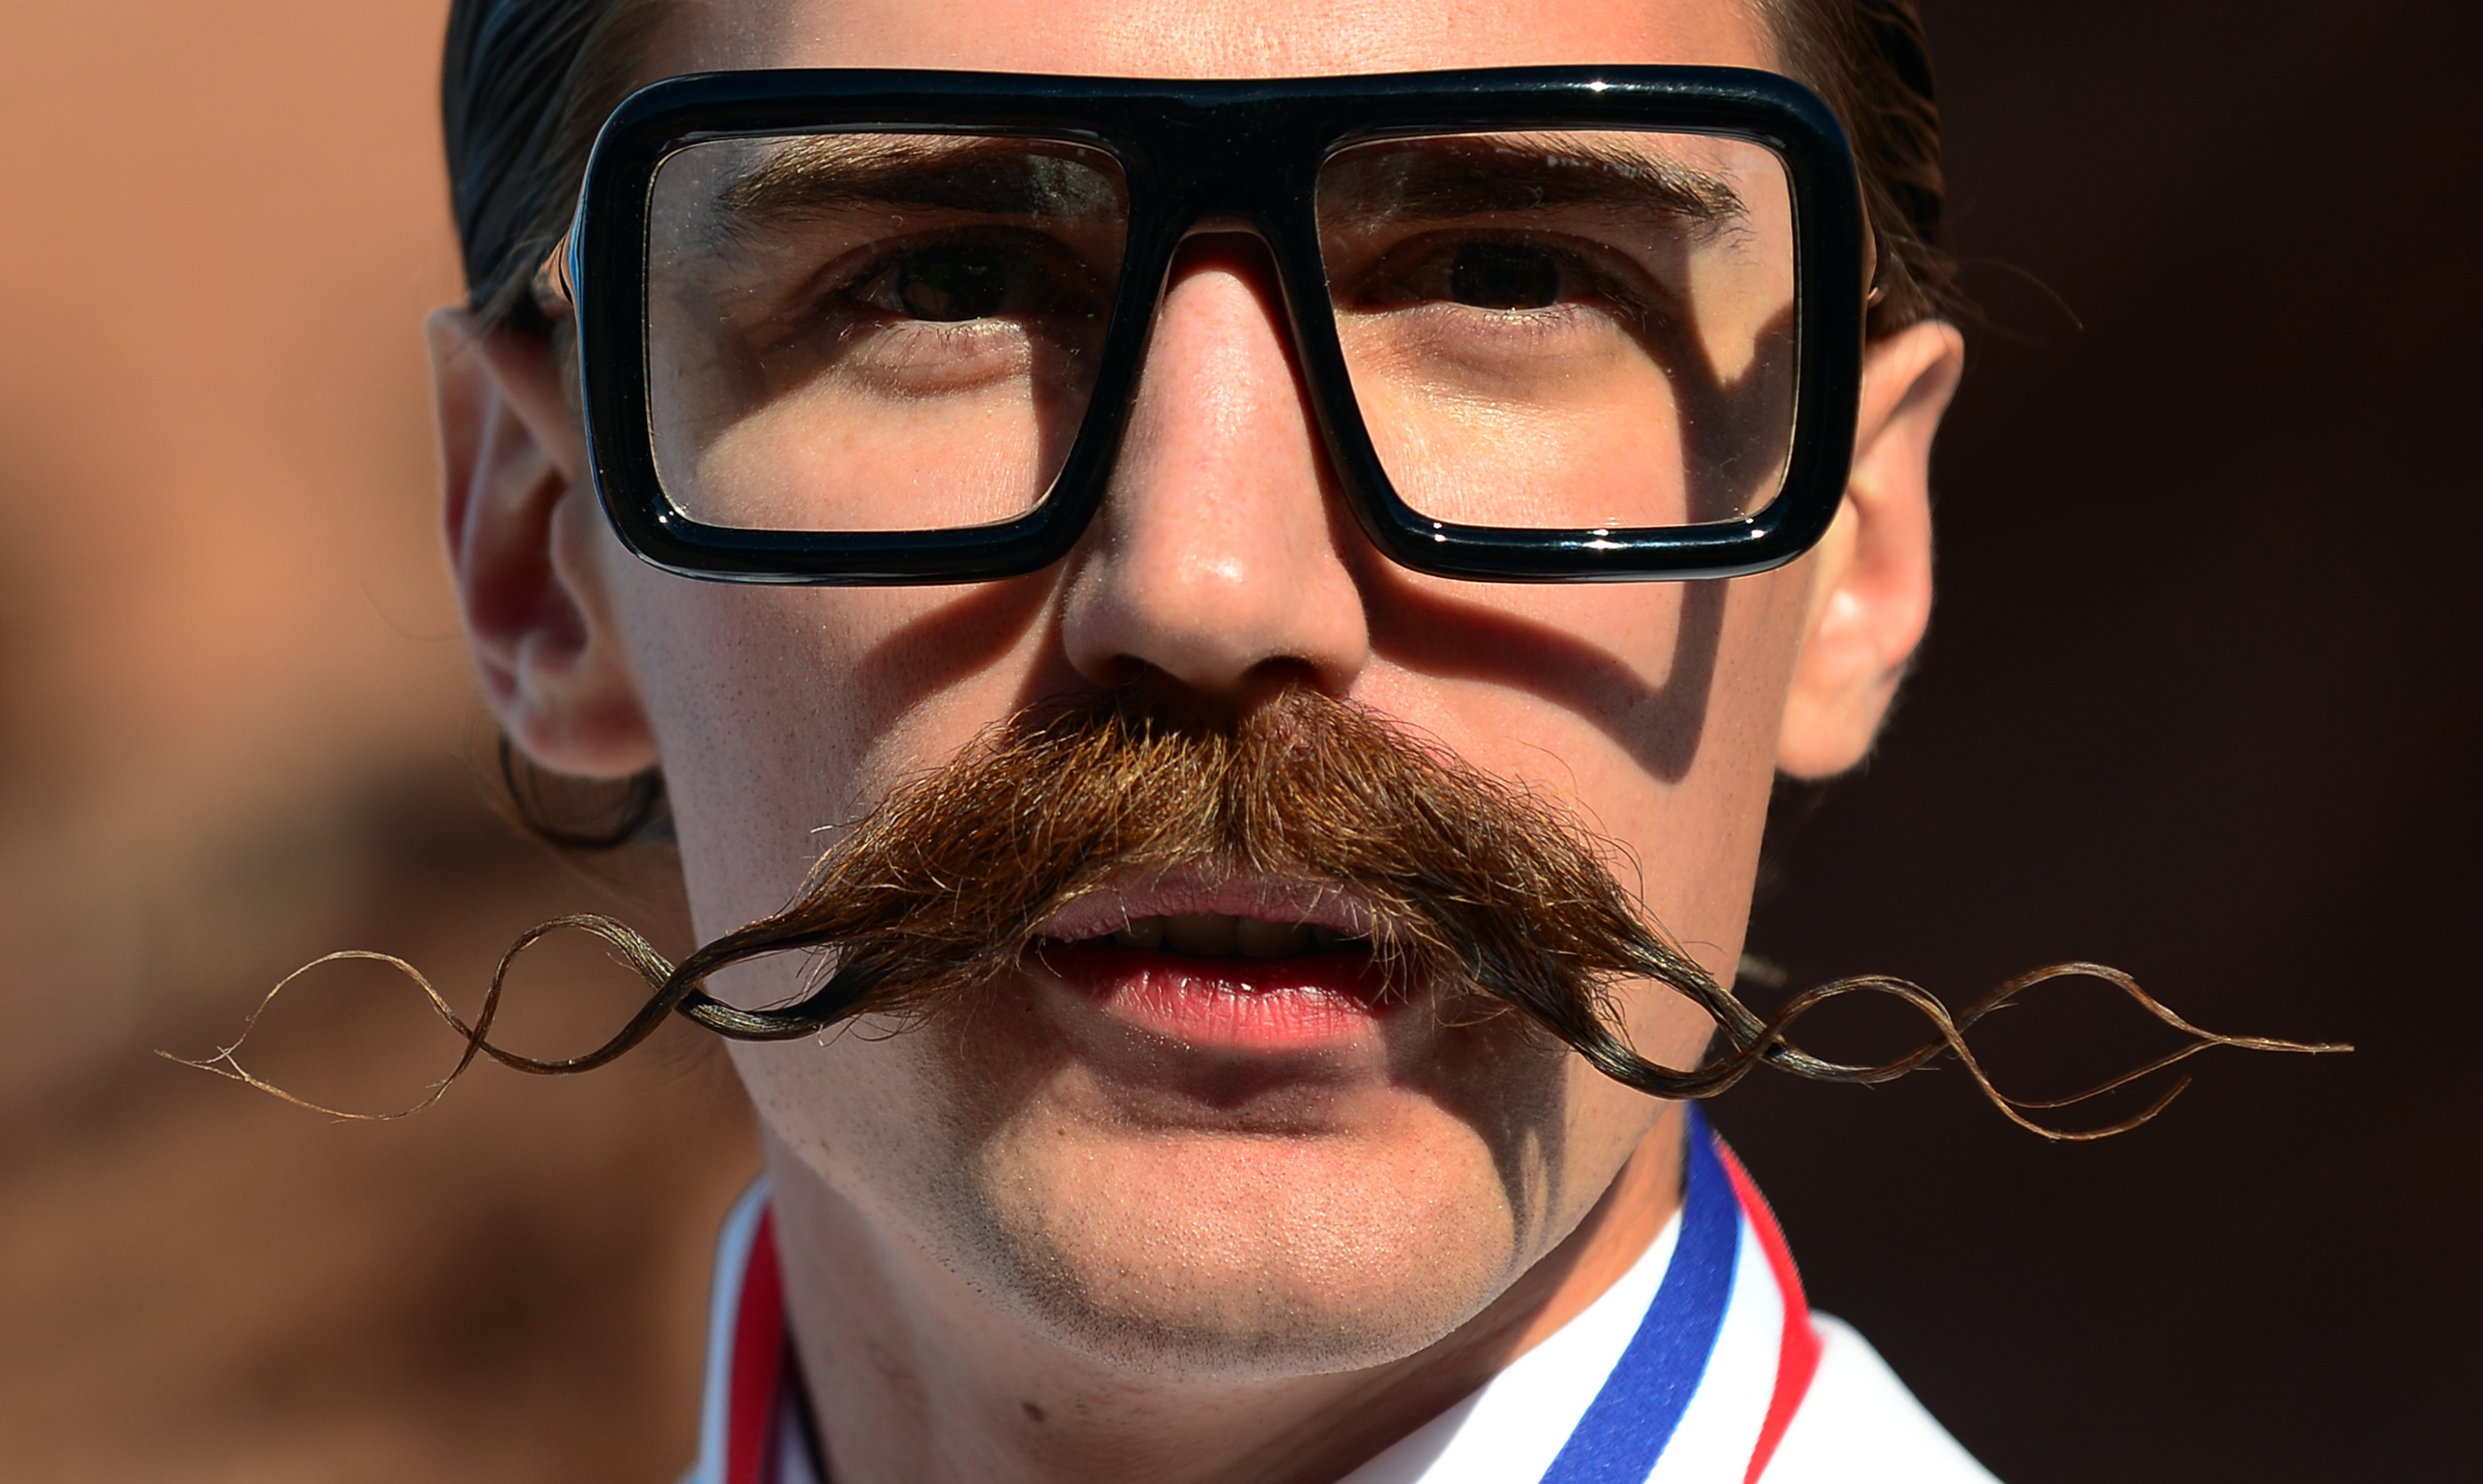 A contestant sports an elaborate mustache at the  National Beard and Moustache Championships in Las Vegas in 2012. Recent trends favoring more facial hair on men have shaved the bottom line for Procter & Gamble.